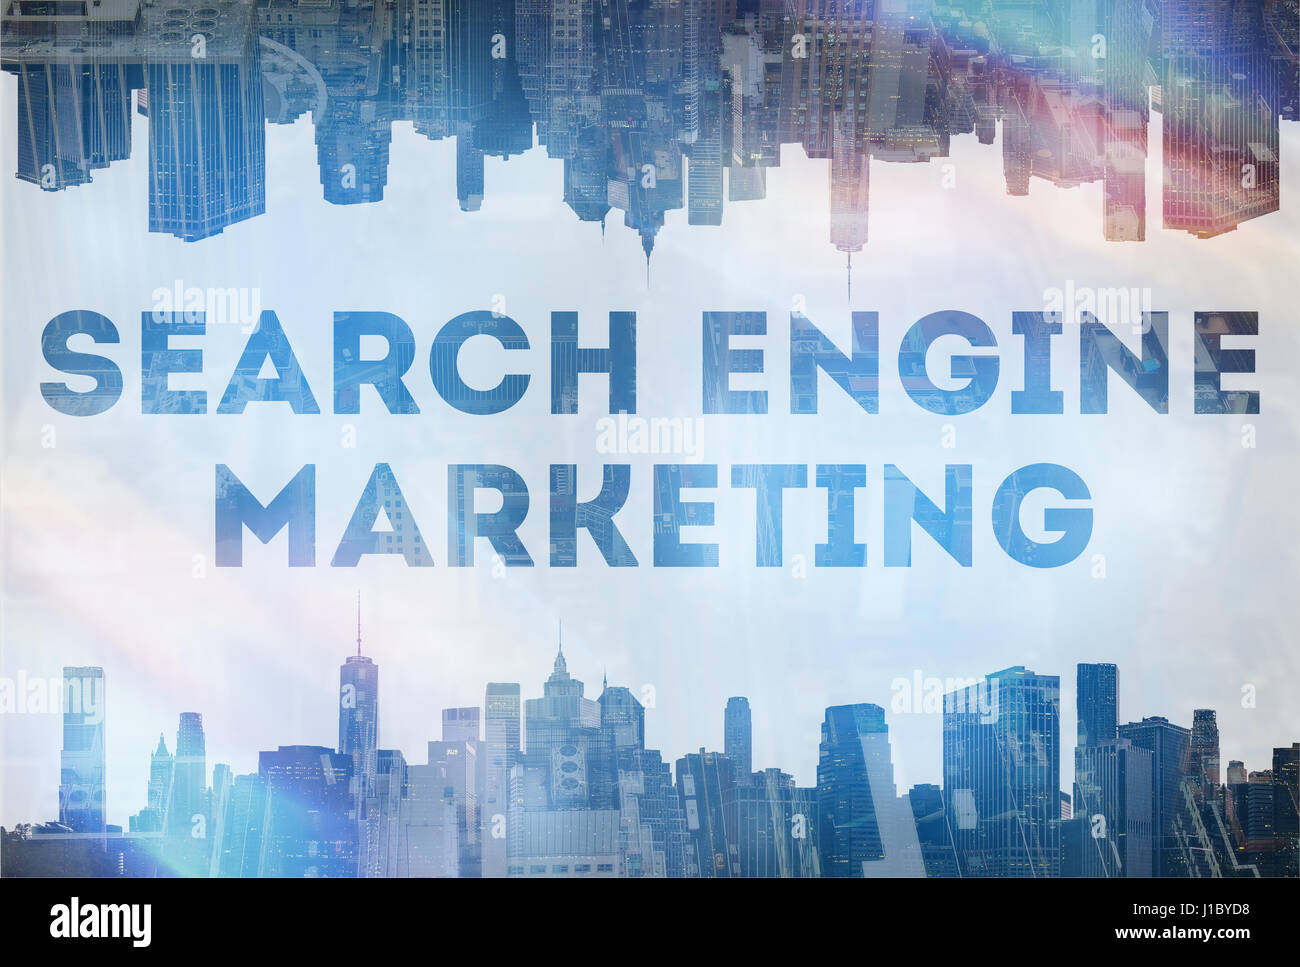 Search Engine Marketing concept image - Stock Image